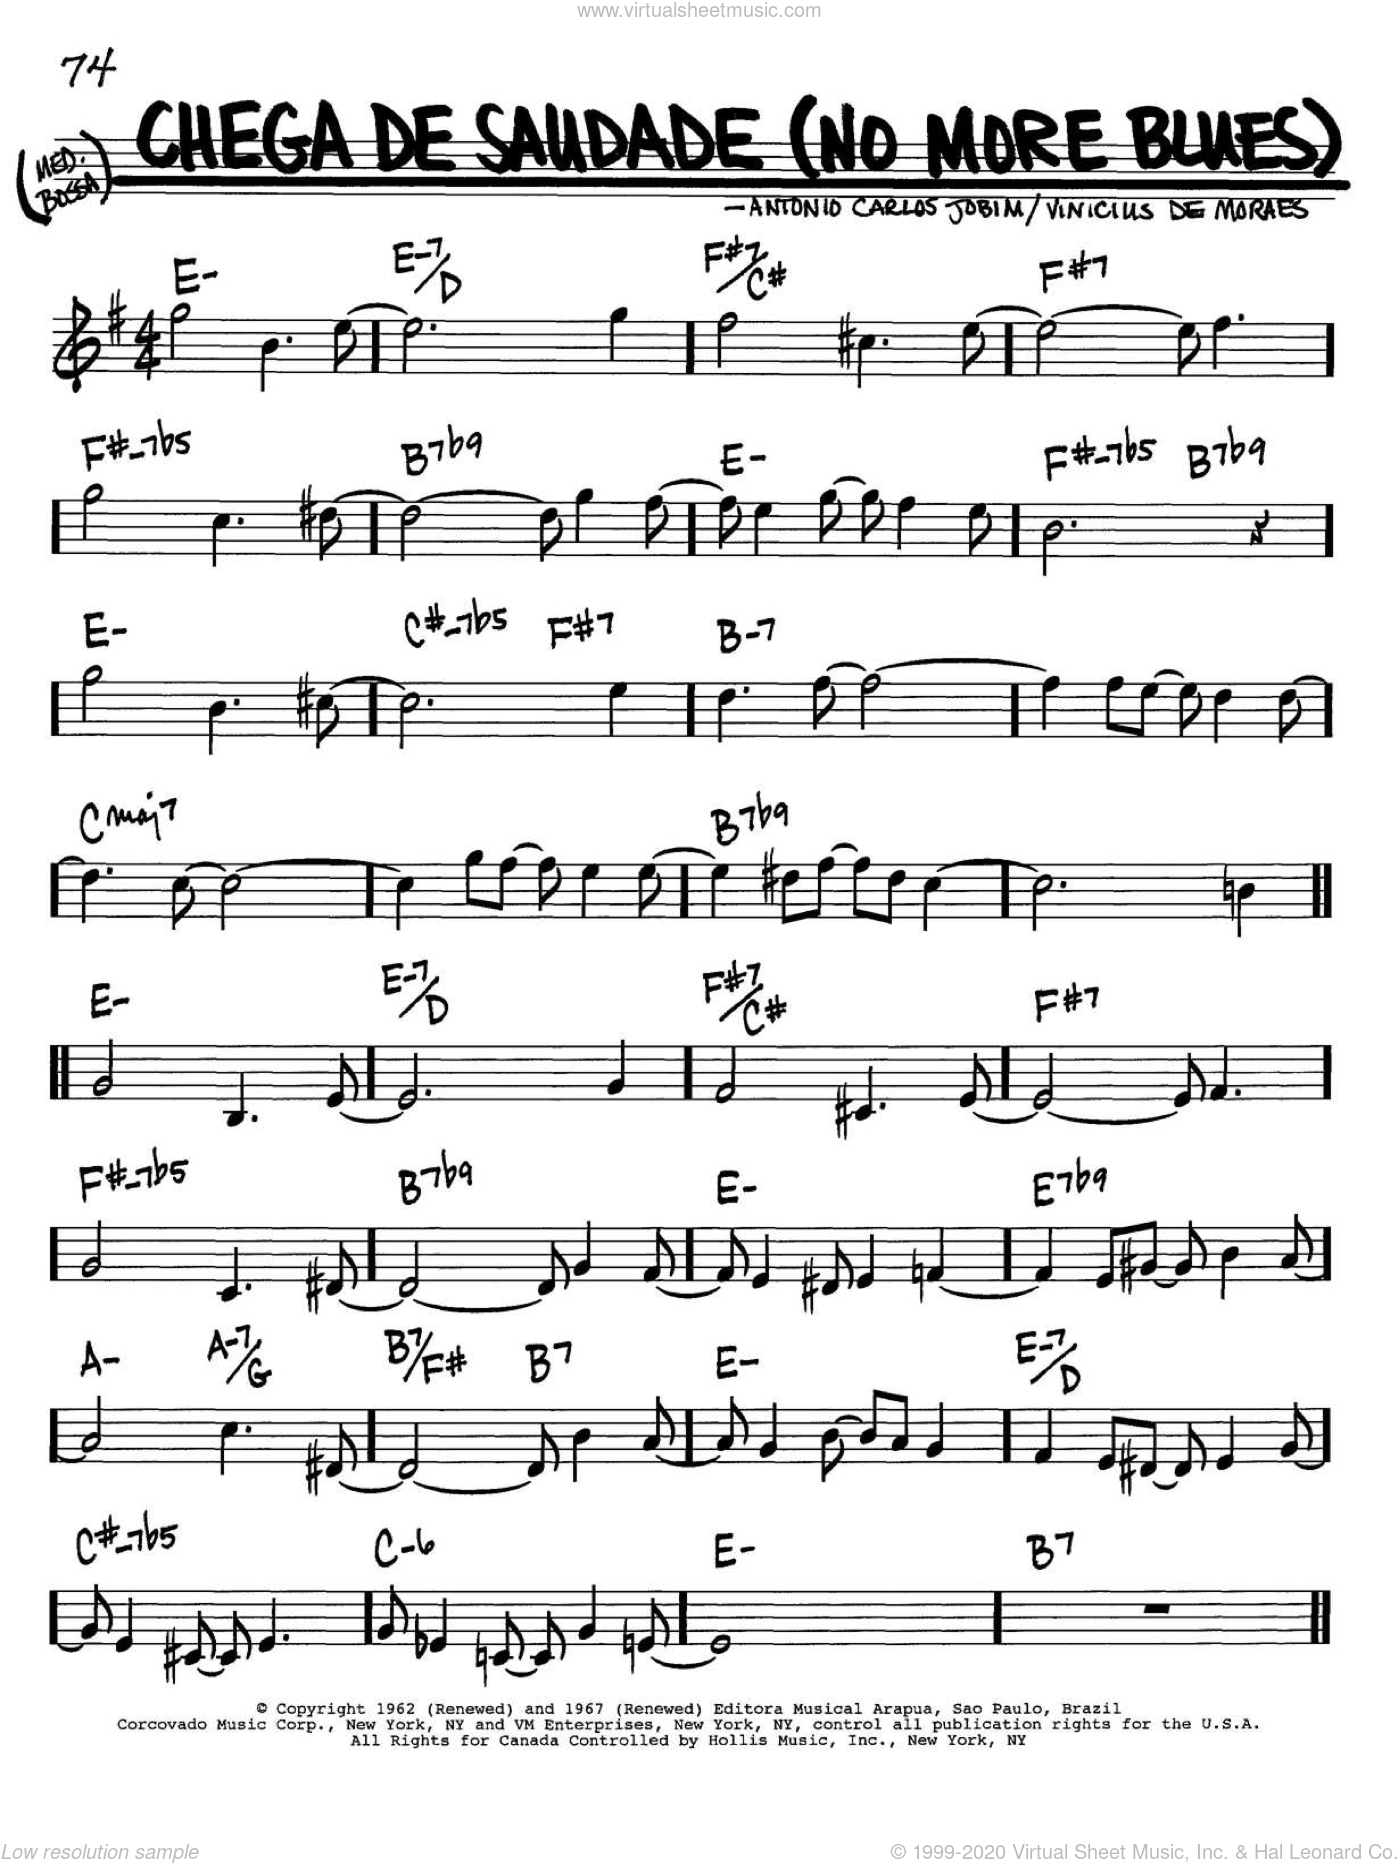 Chega De Saudade (No More Blues) sheet music for voice and other instruments (in Bb) by Antonio Carlos Jobim, Jessie Cavanaugh, Jon Hendricks and Vinicius de Moraes, intermediate. Score Image Preview.